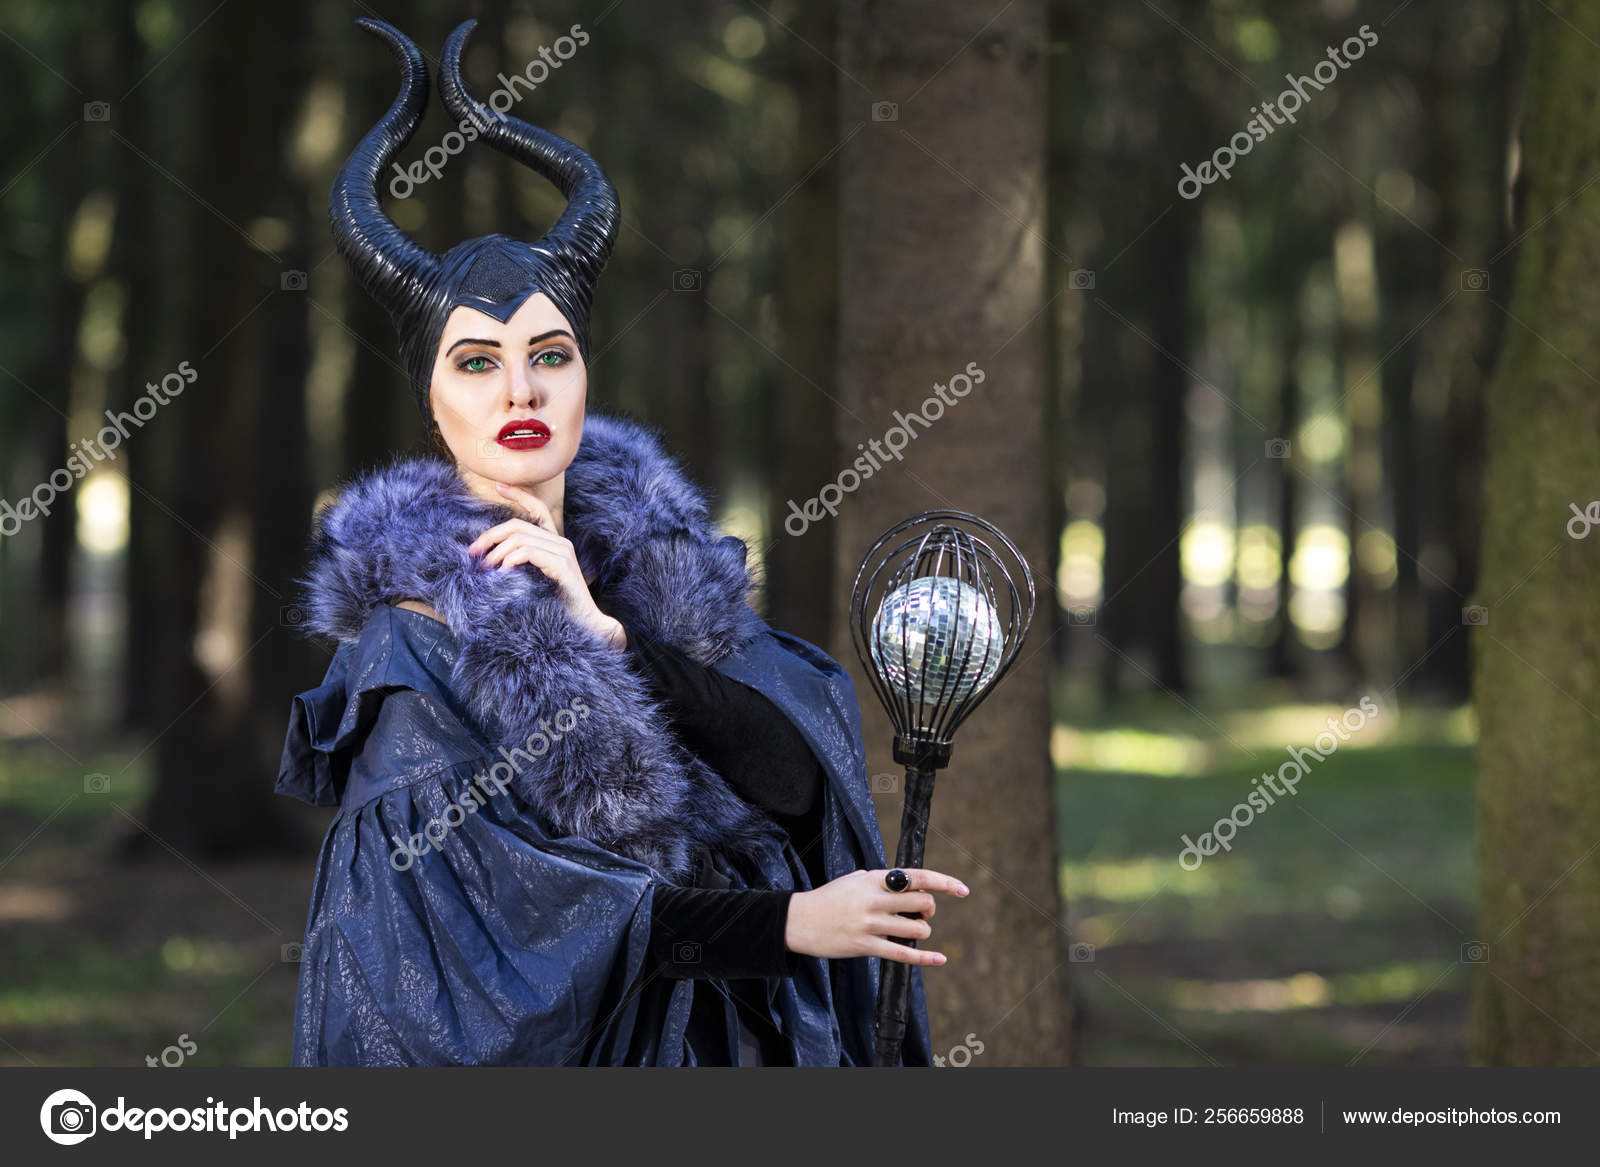 Costume Drama Young Caucasian Female Poses In Maleficent